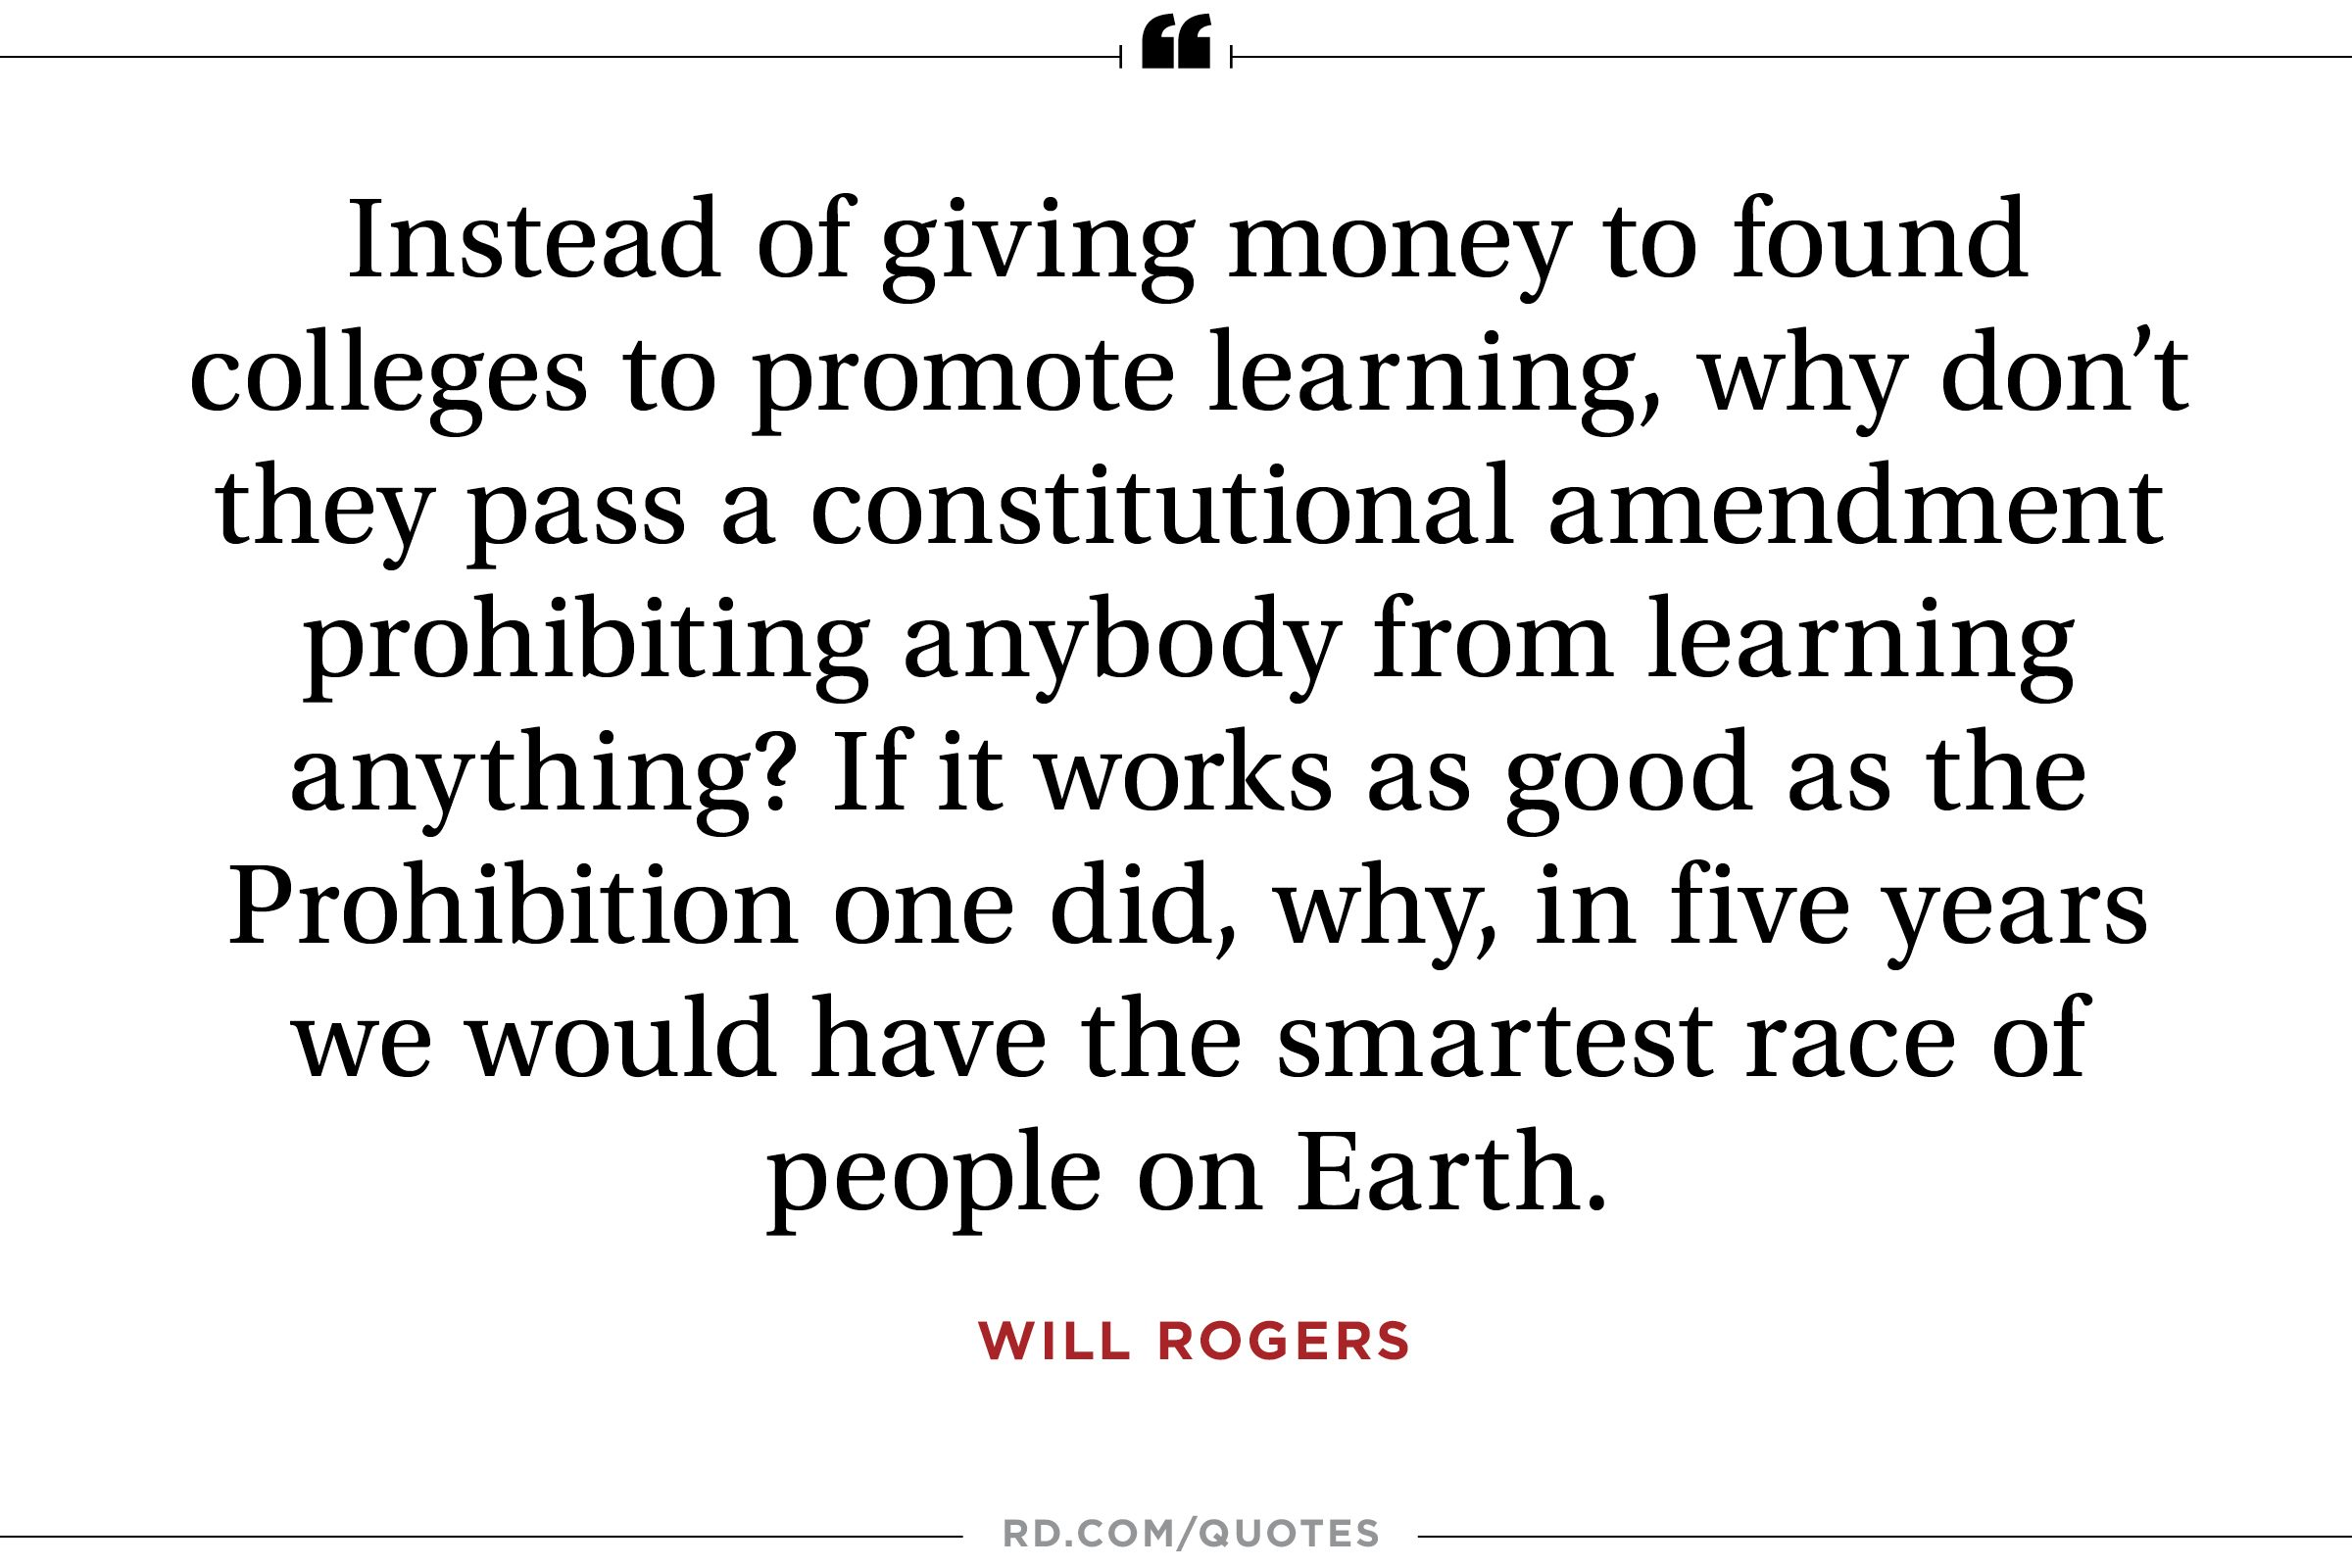 10 Wise Quotes From Will Rogers | Reader\'s Digest